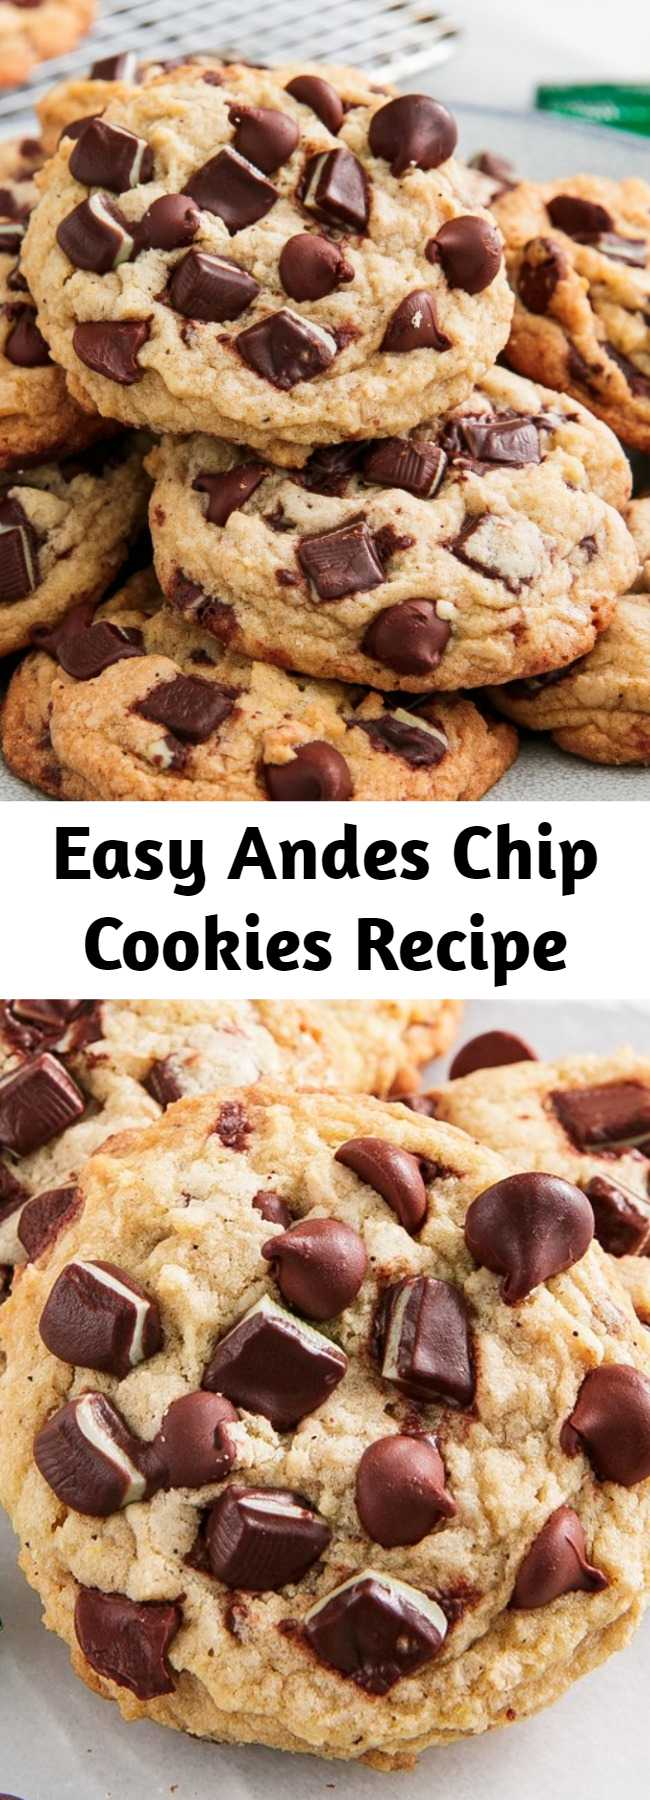 Easy Andes Chip Cookies Recipe - If you're a fan of mint + chocolate desserts, these cookies will blow your mind. The espresso powder is technically optional, but honestly, it's what makes them so special. #easy #recipe #chocolate #mint #andes #cookies #christmascookies #Baking #desserts #peppermint #holidays